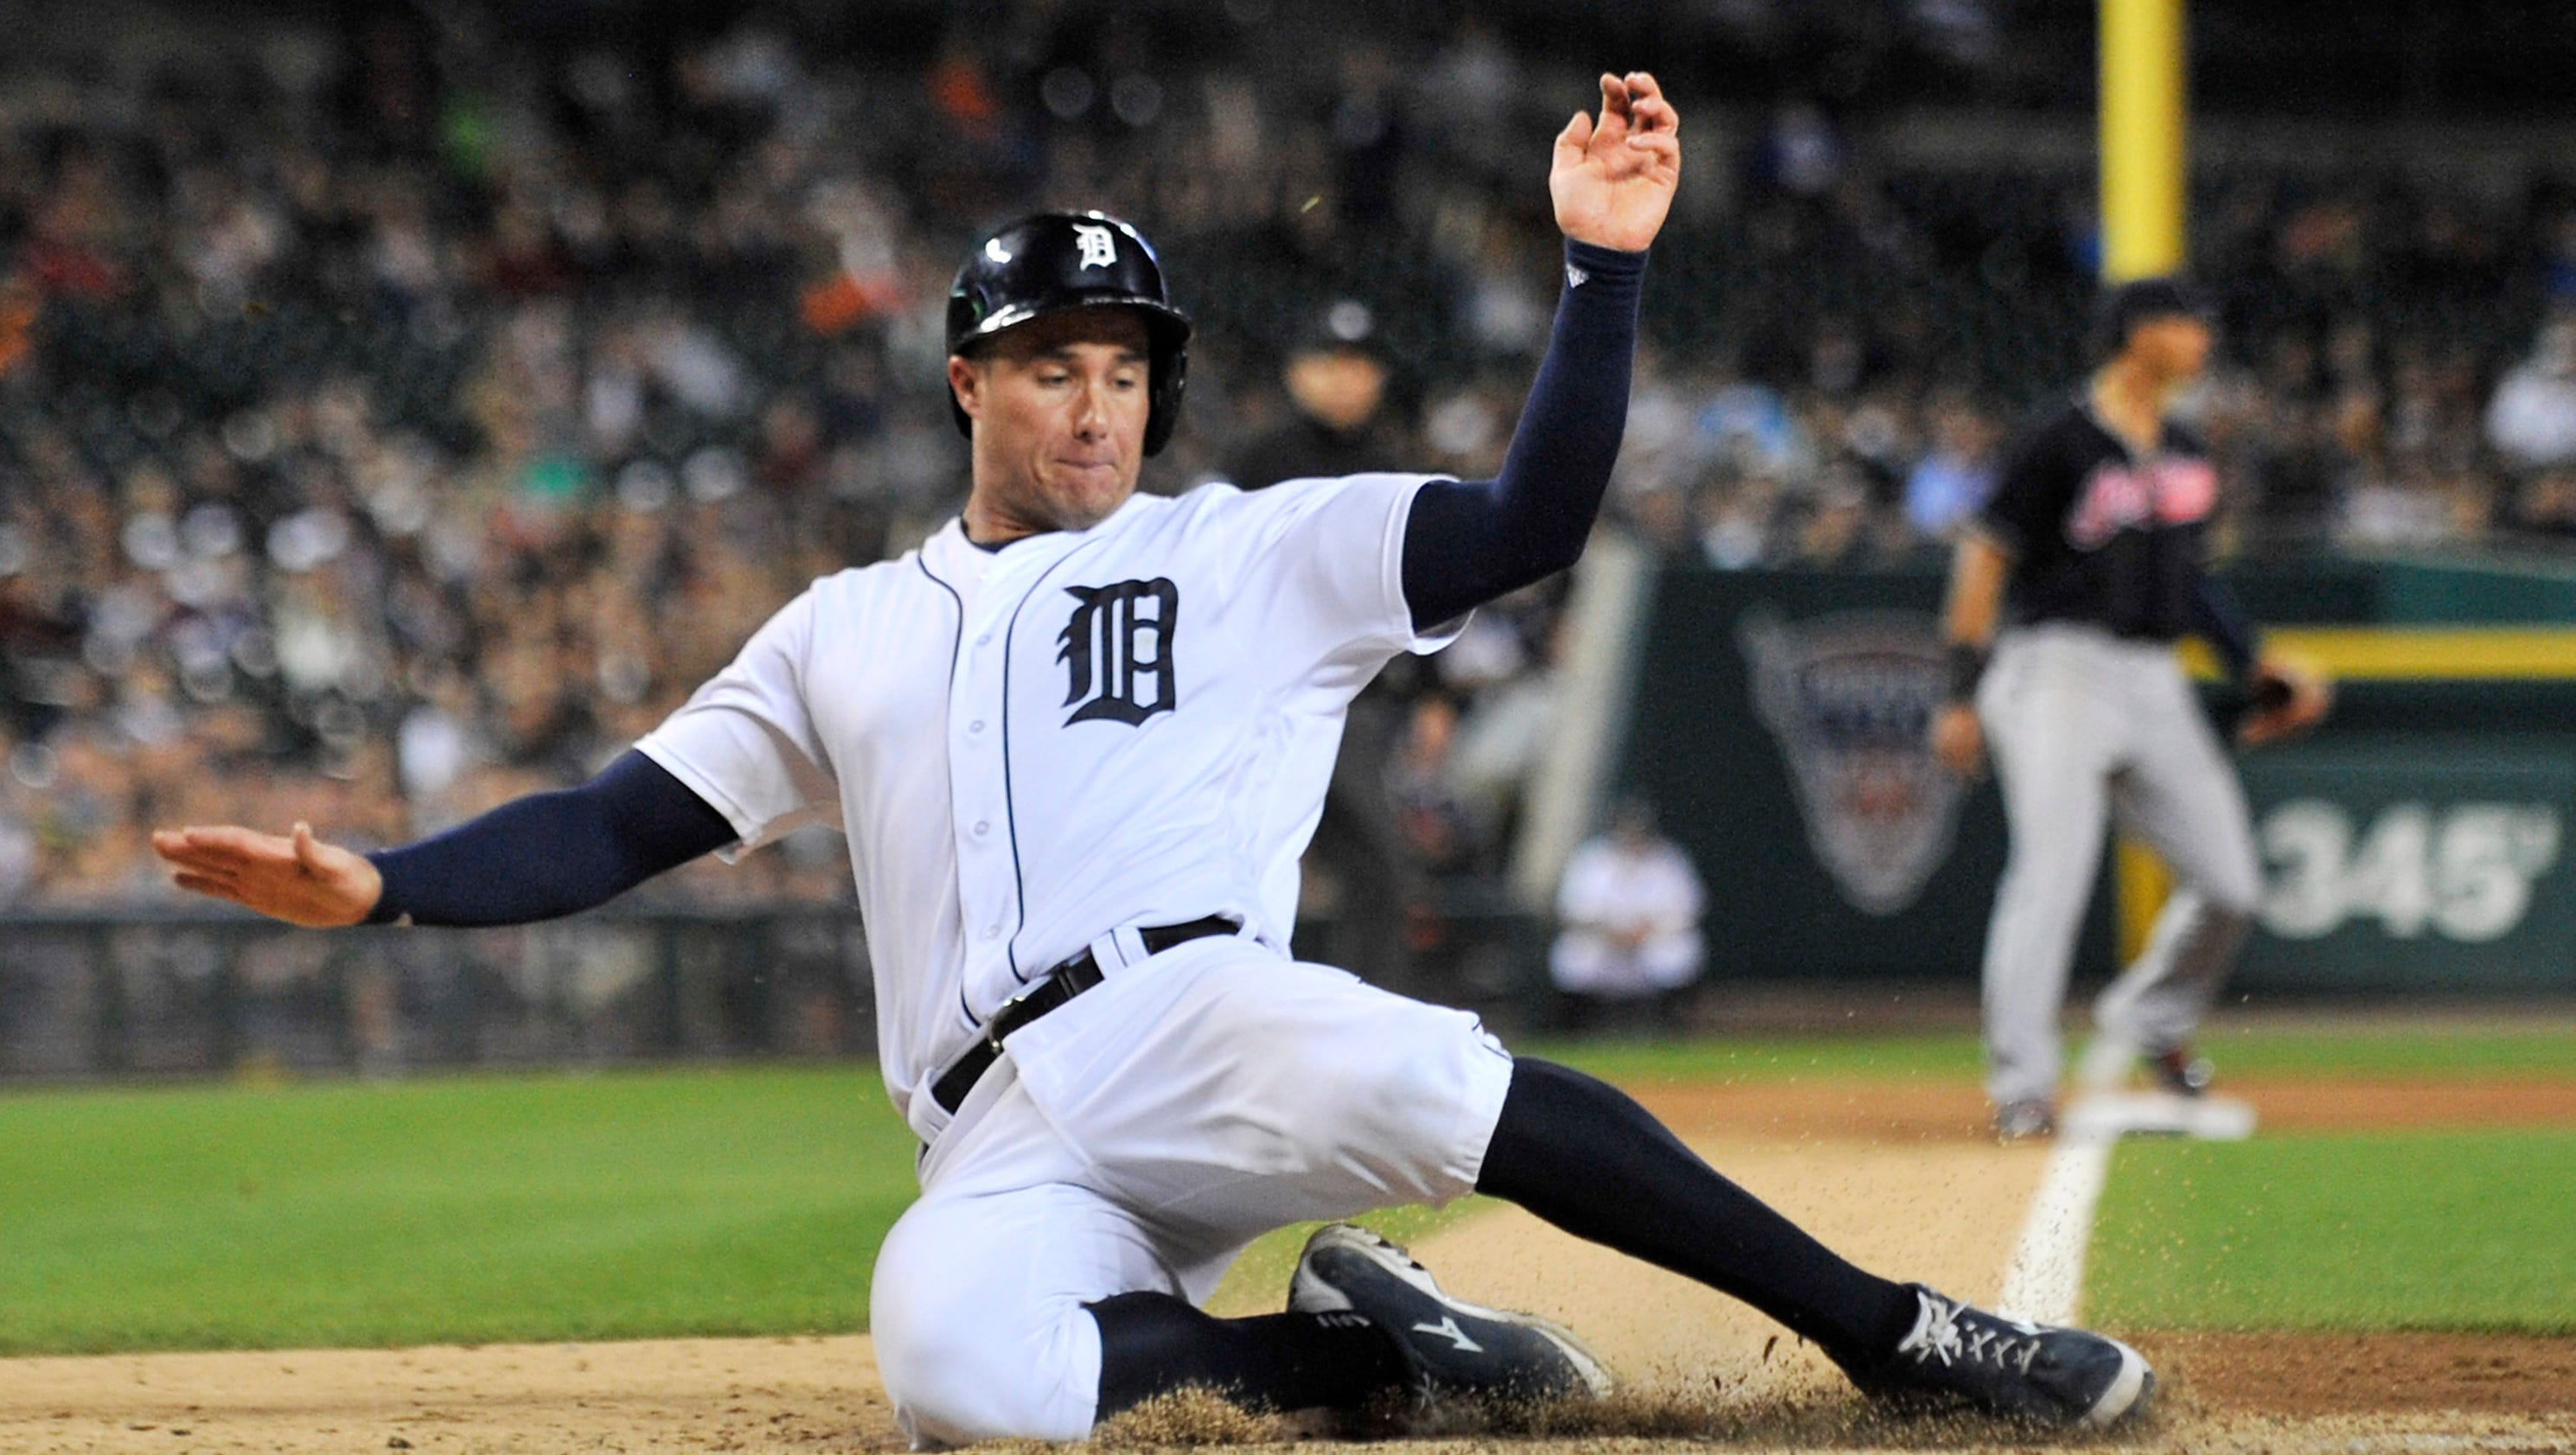 636106245697632312-2016-0927-rb-tigers-indians427